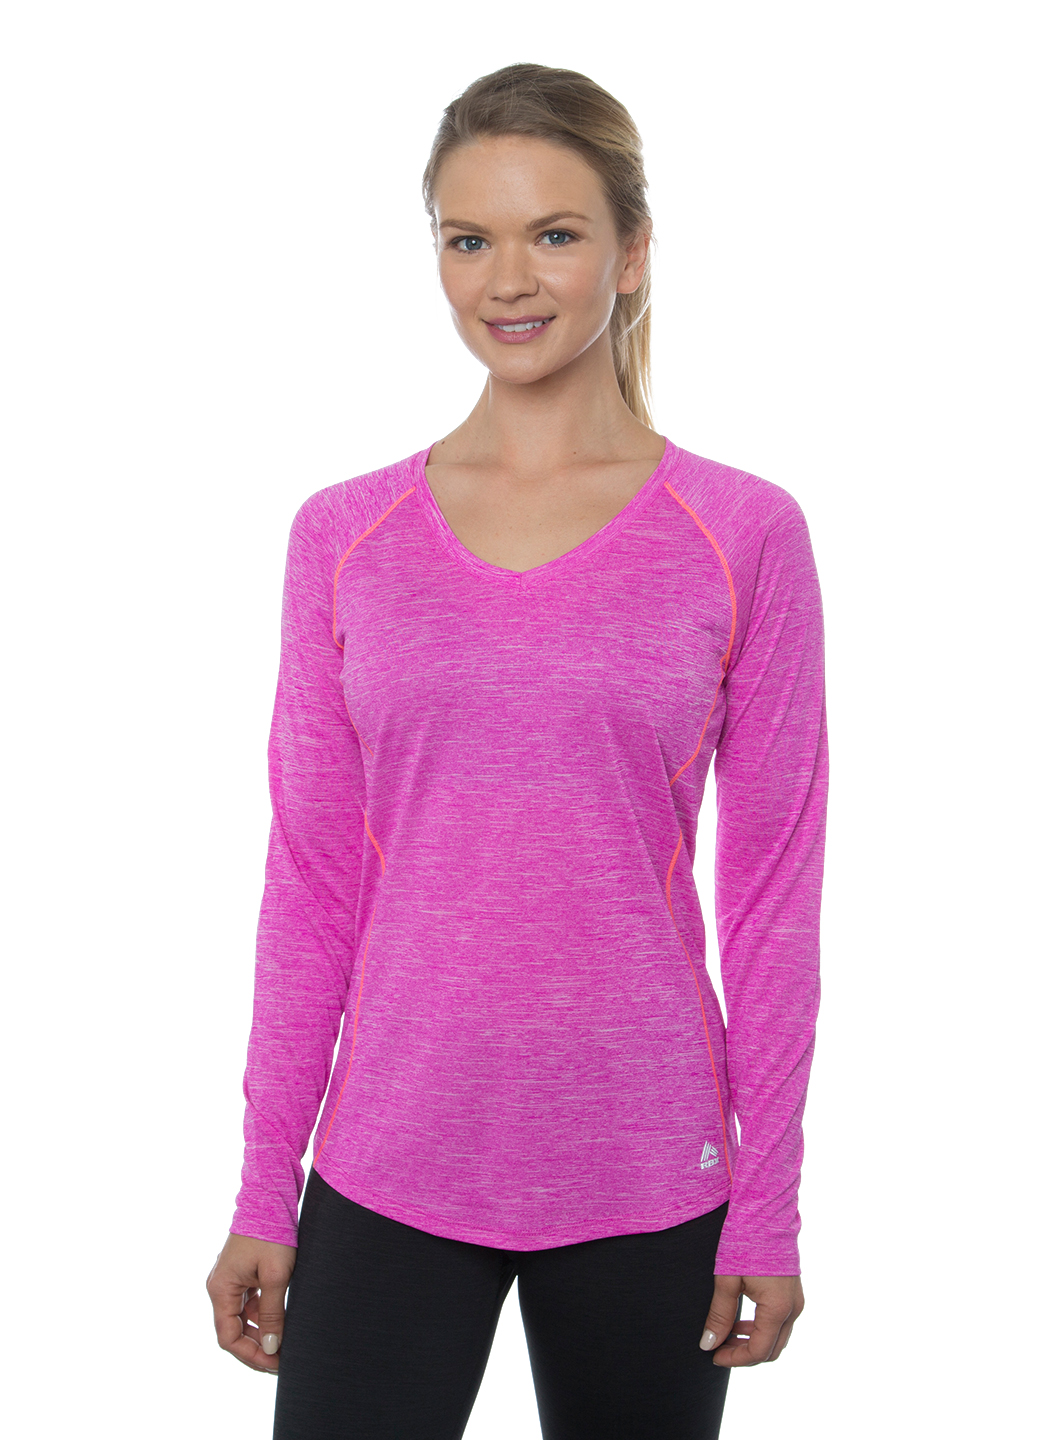 RBX Active Stratus Heathered Space Dye Long Sleeve V-Neck Tee